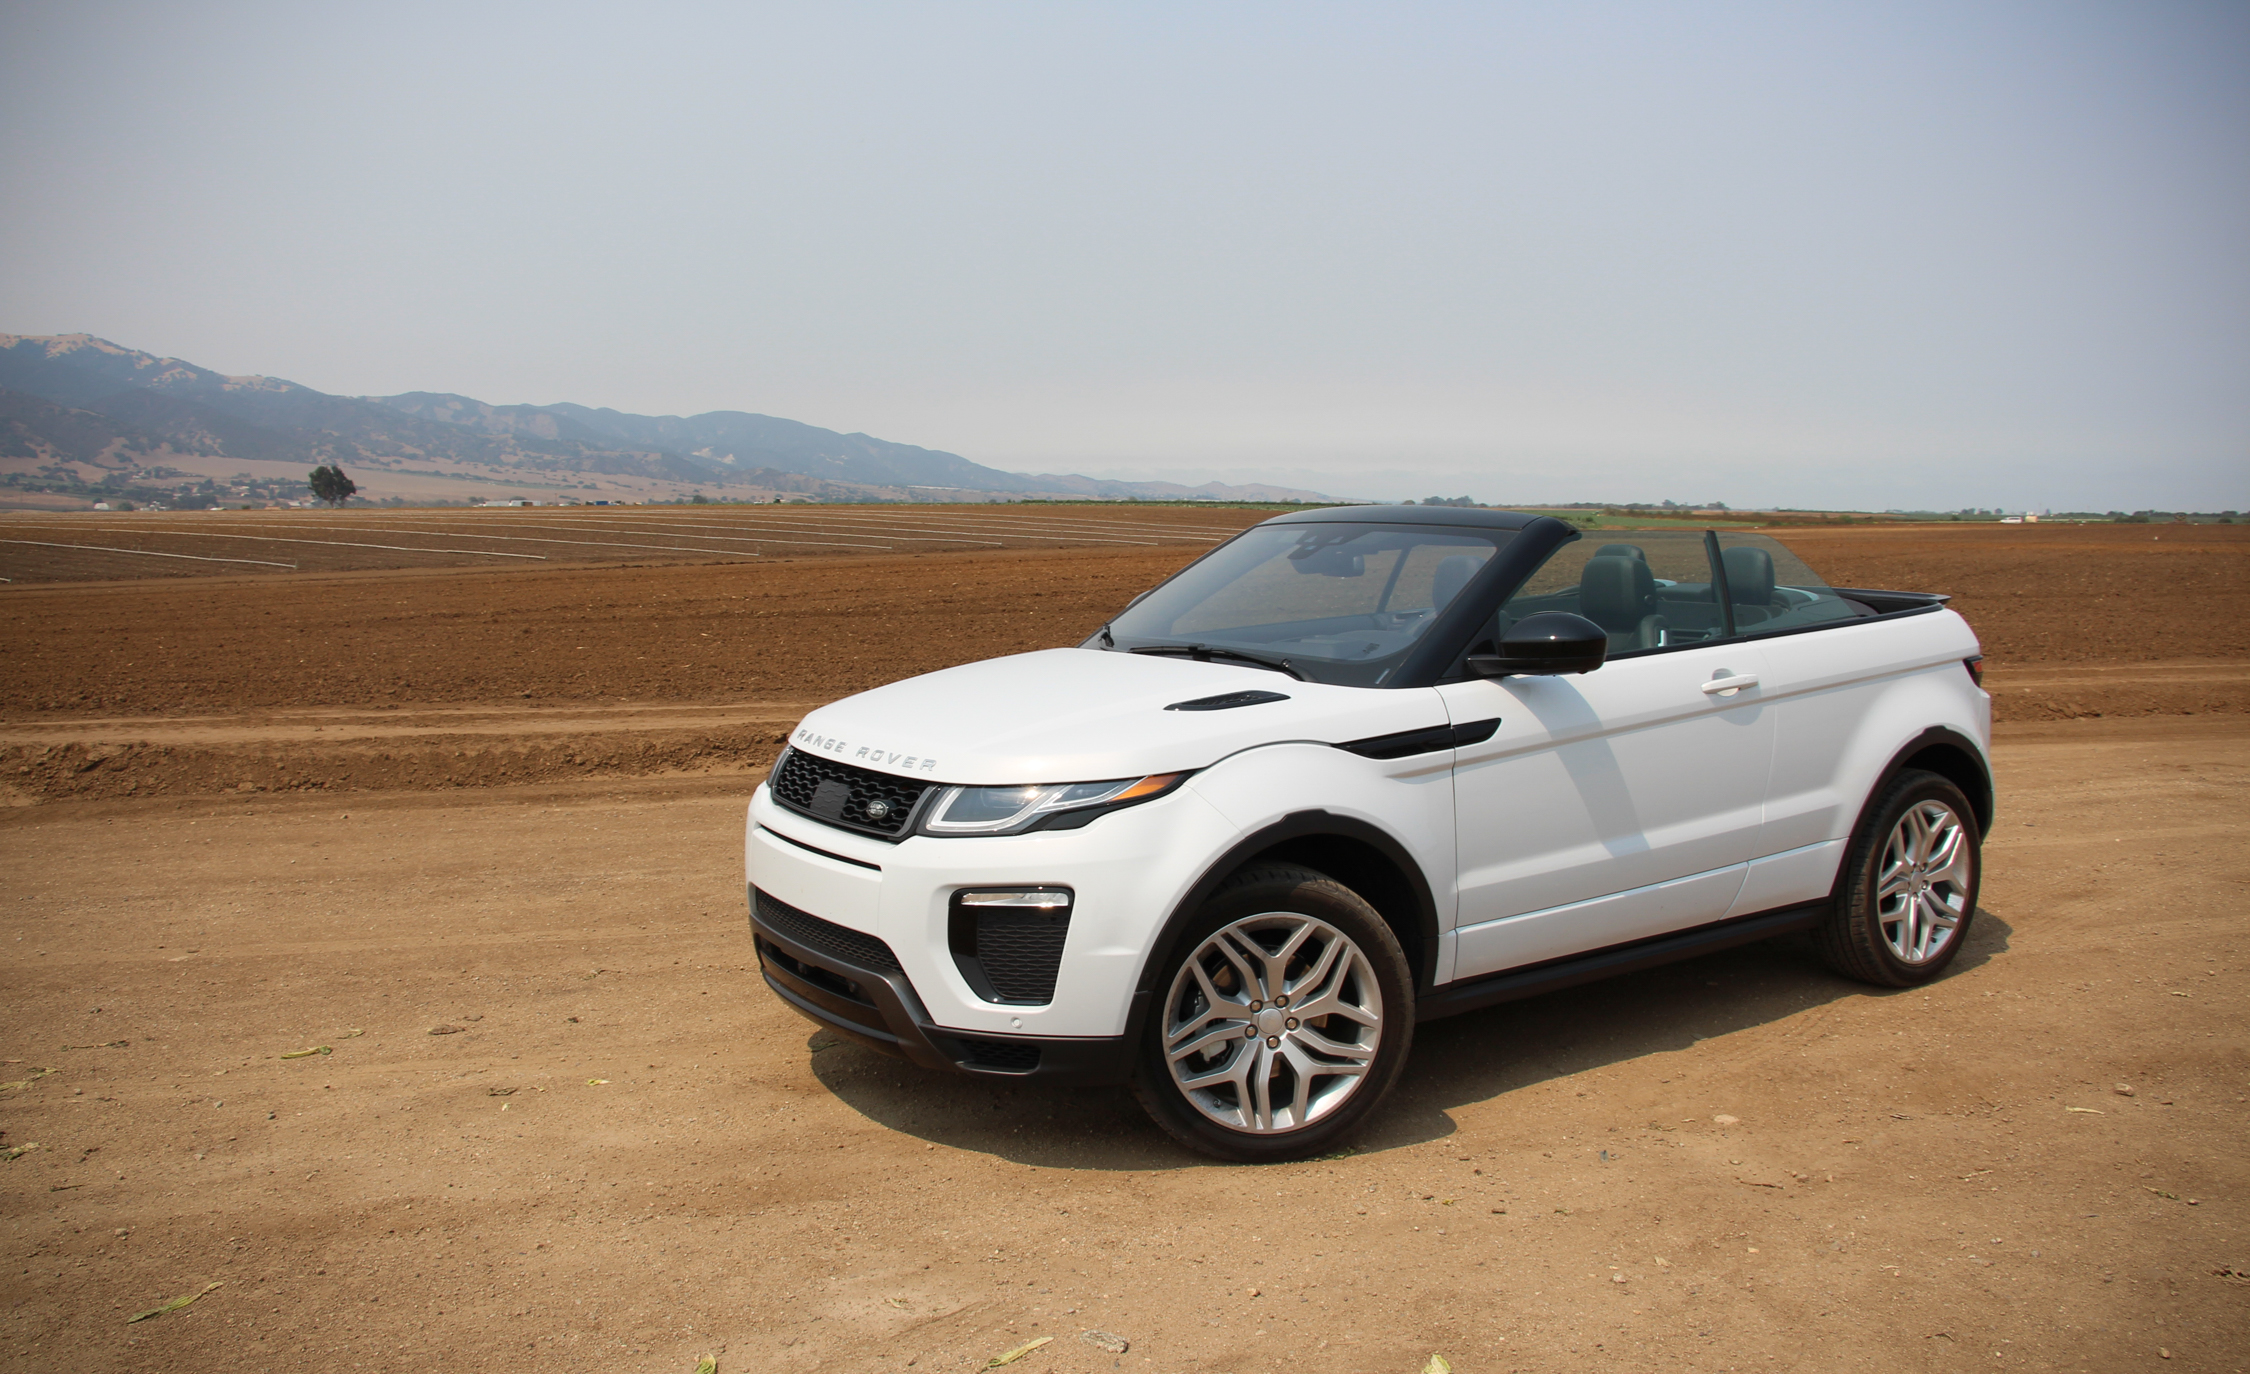 Featured Image of 2017 Land Rover Range Rover Evoque Convertible